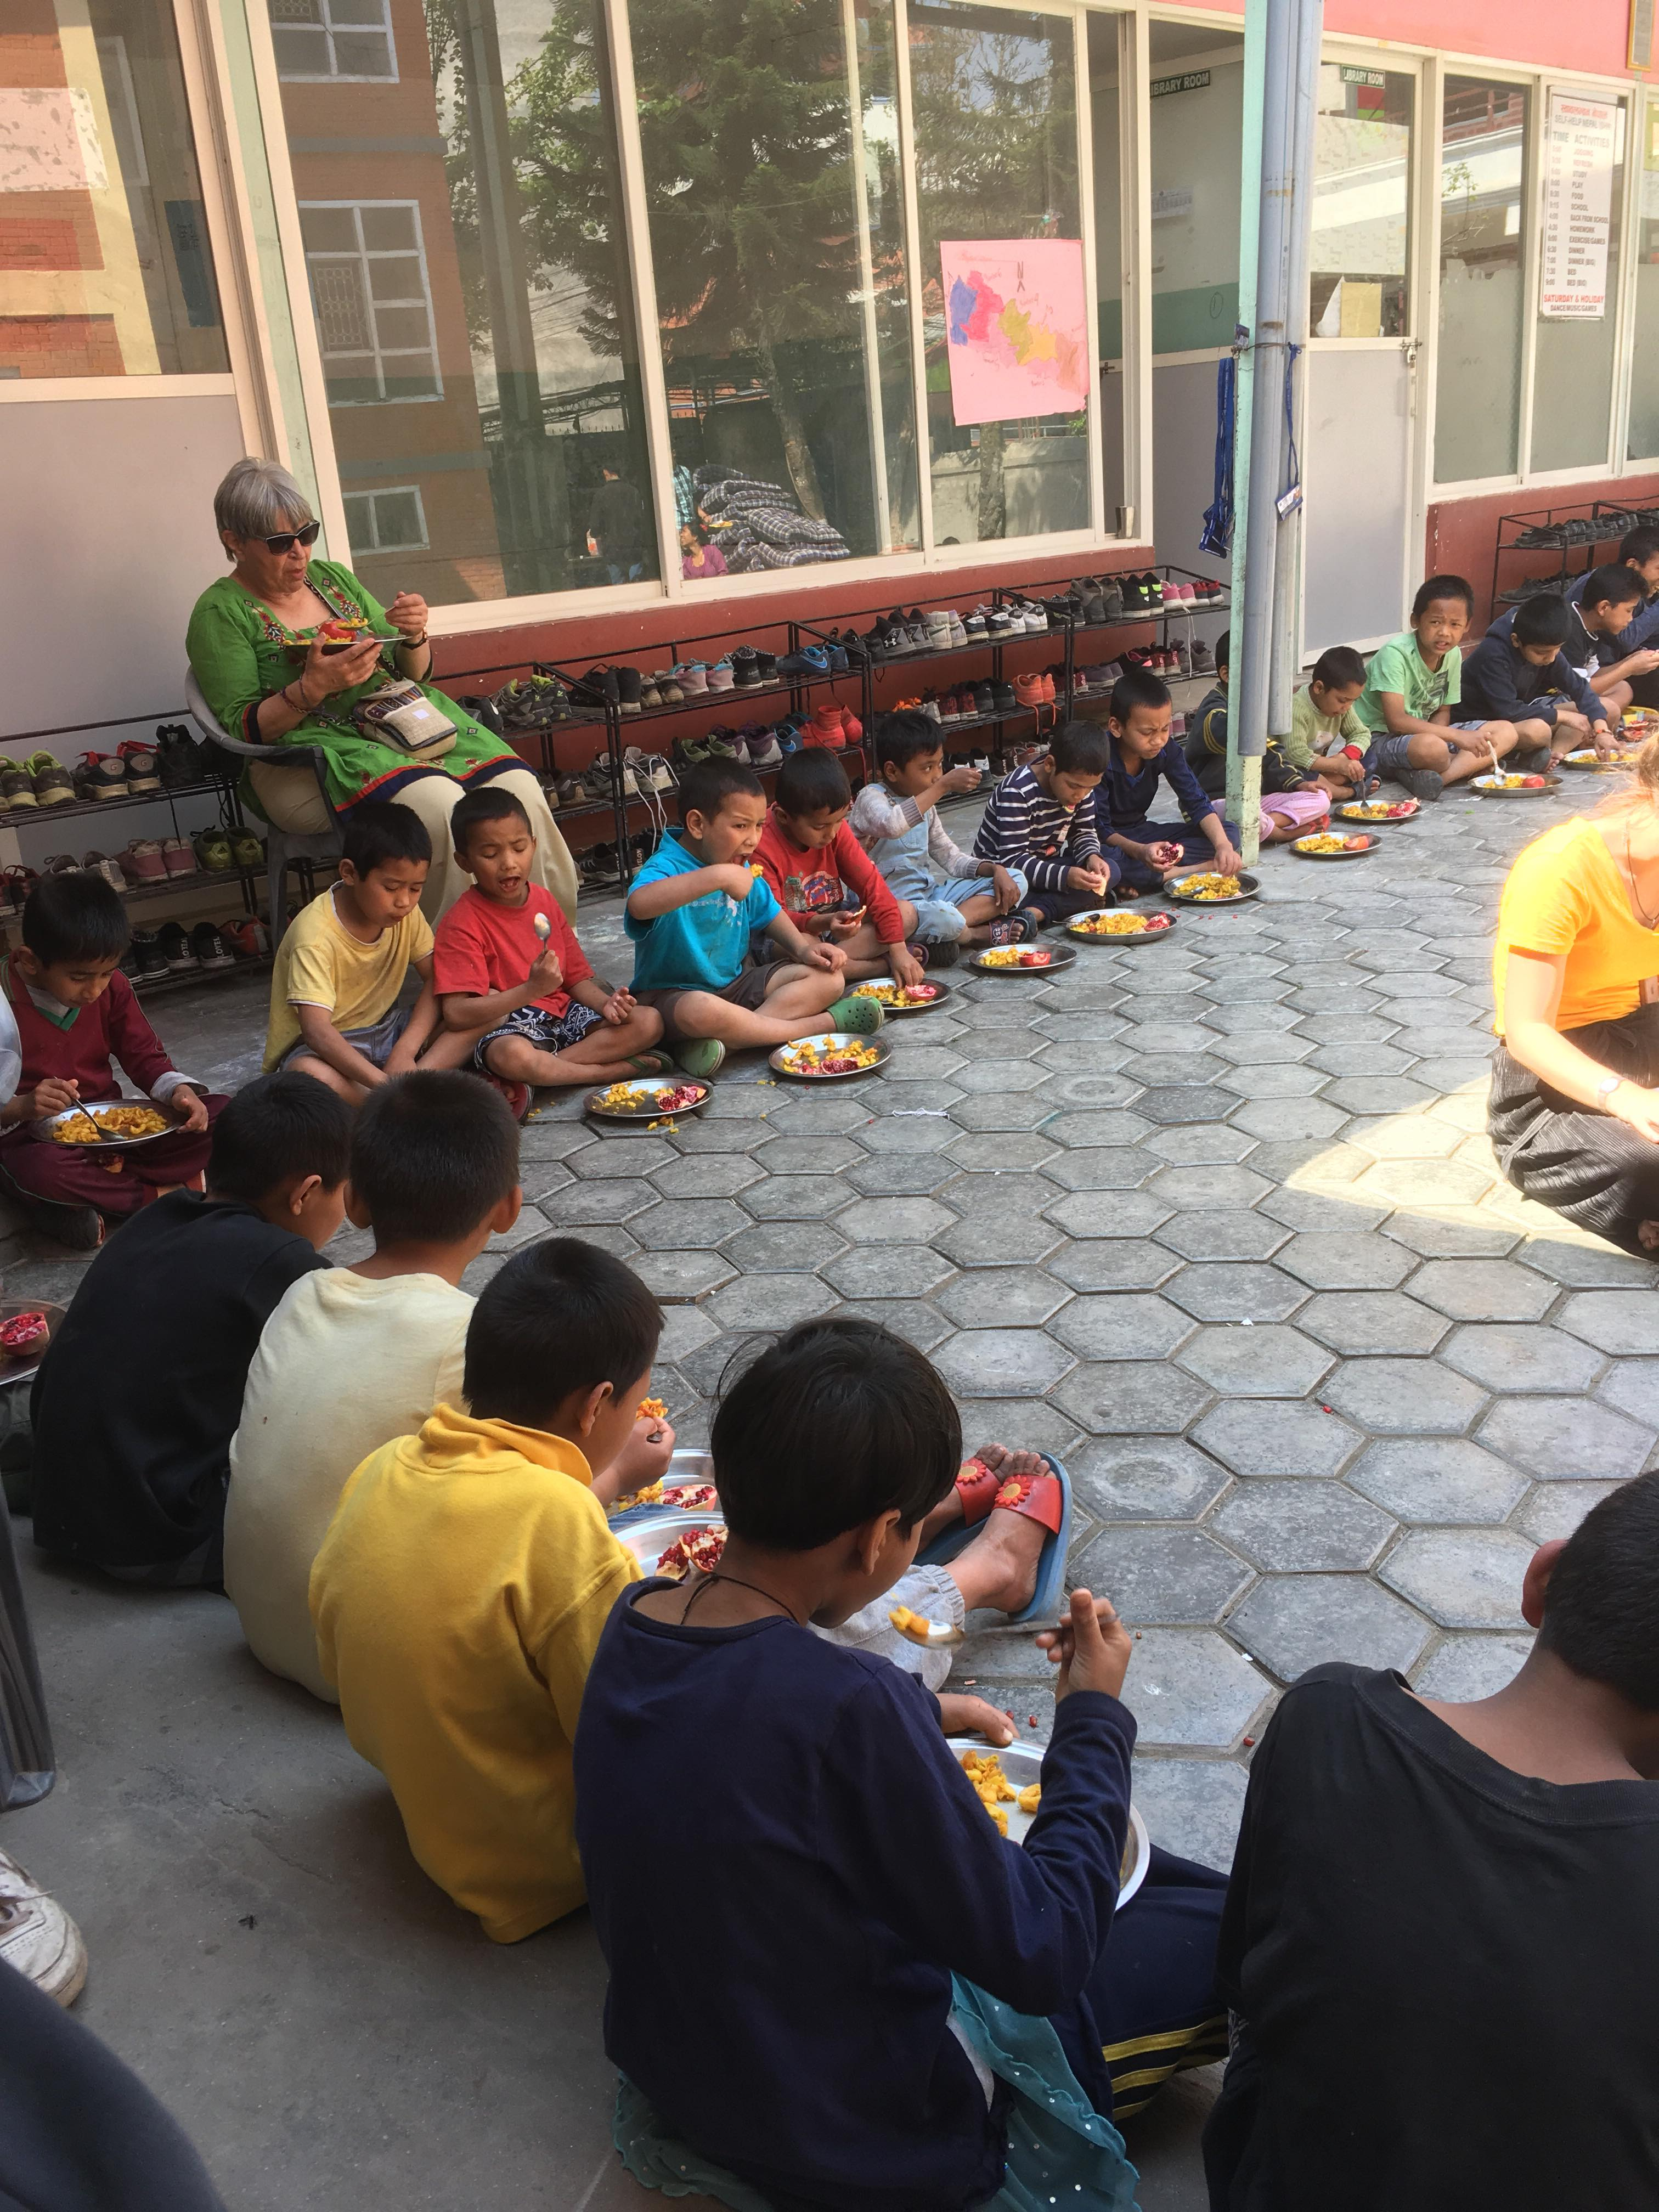 Children at Home of Hope in Kathmandu sit and eat a meal in the courtyard at their home in Kathmandu. Home of Hope or Self Help Nepal is a charity organization and children's home founded by Ellen Dietrich.